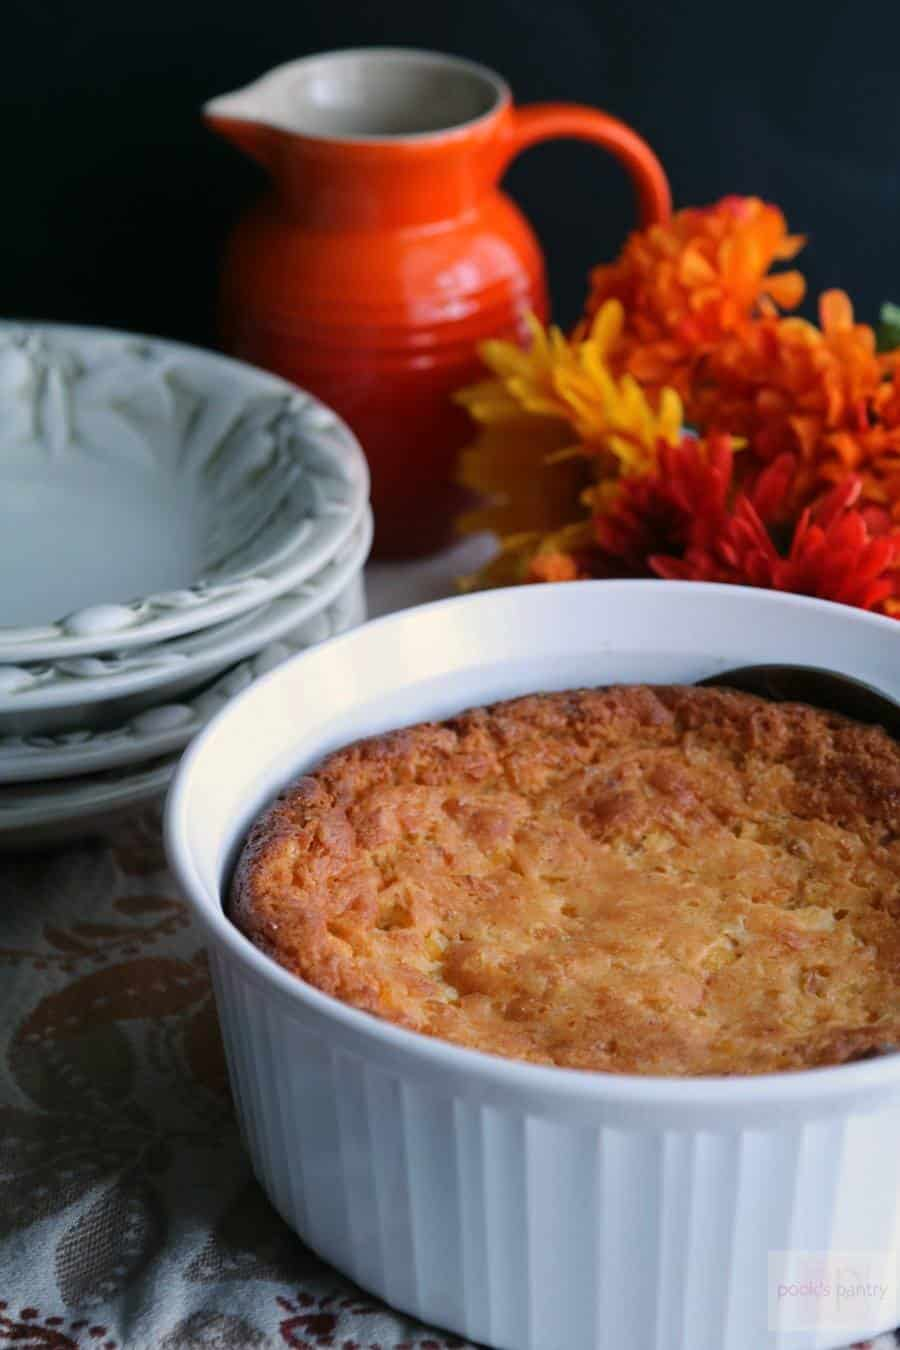 A scuffle dish holding Easiest Five Ingredient Corn Casserole is served with plates and orange flowers in the background